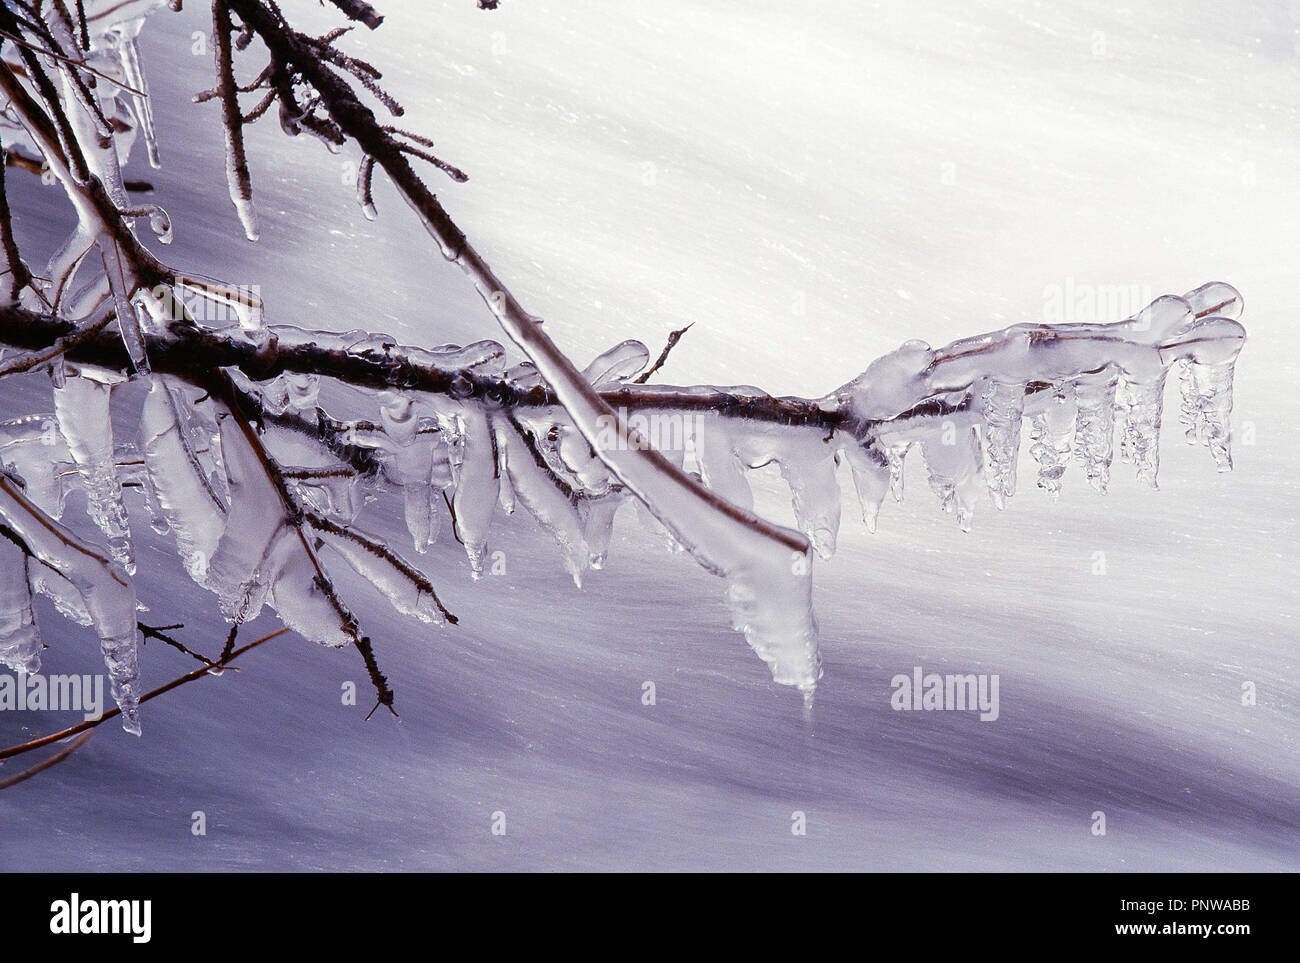 USA. Le Wyoming. Le Parc National de Yellowstone en hiver. Branche de l'arbre couvert de glace. Photo Stock